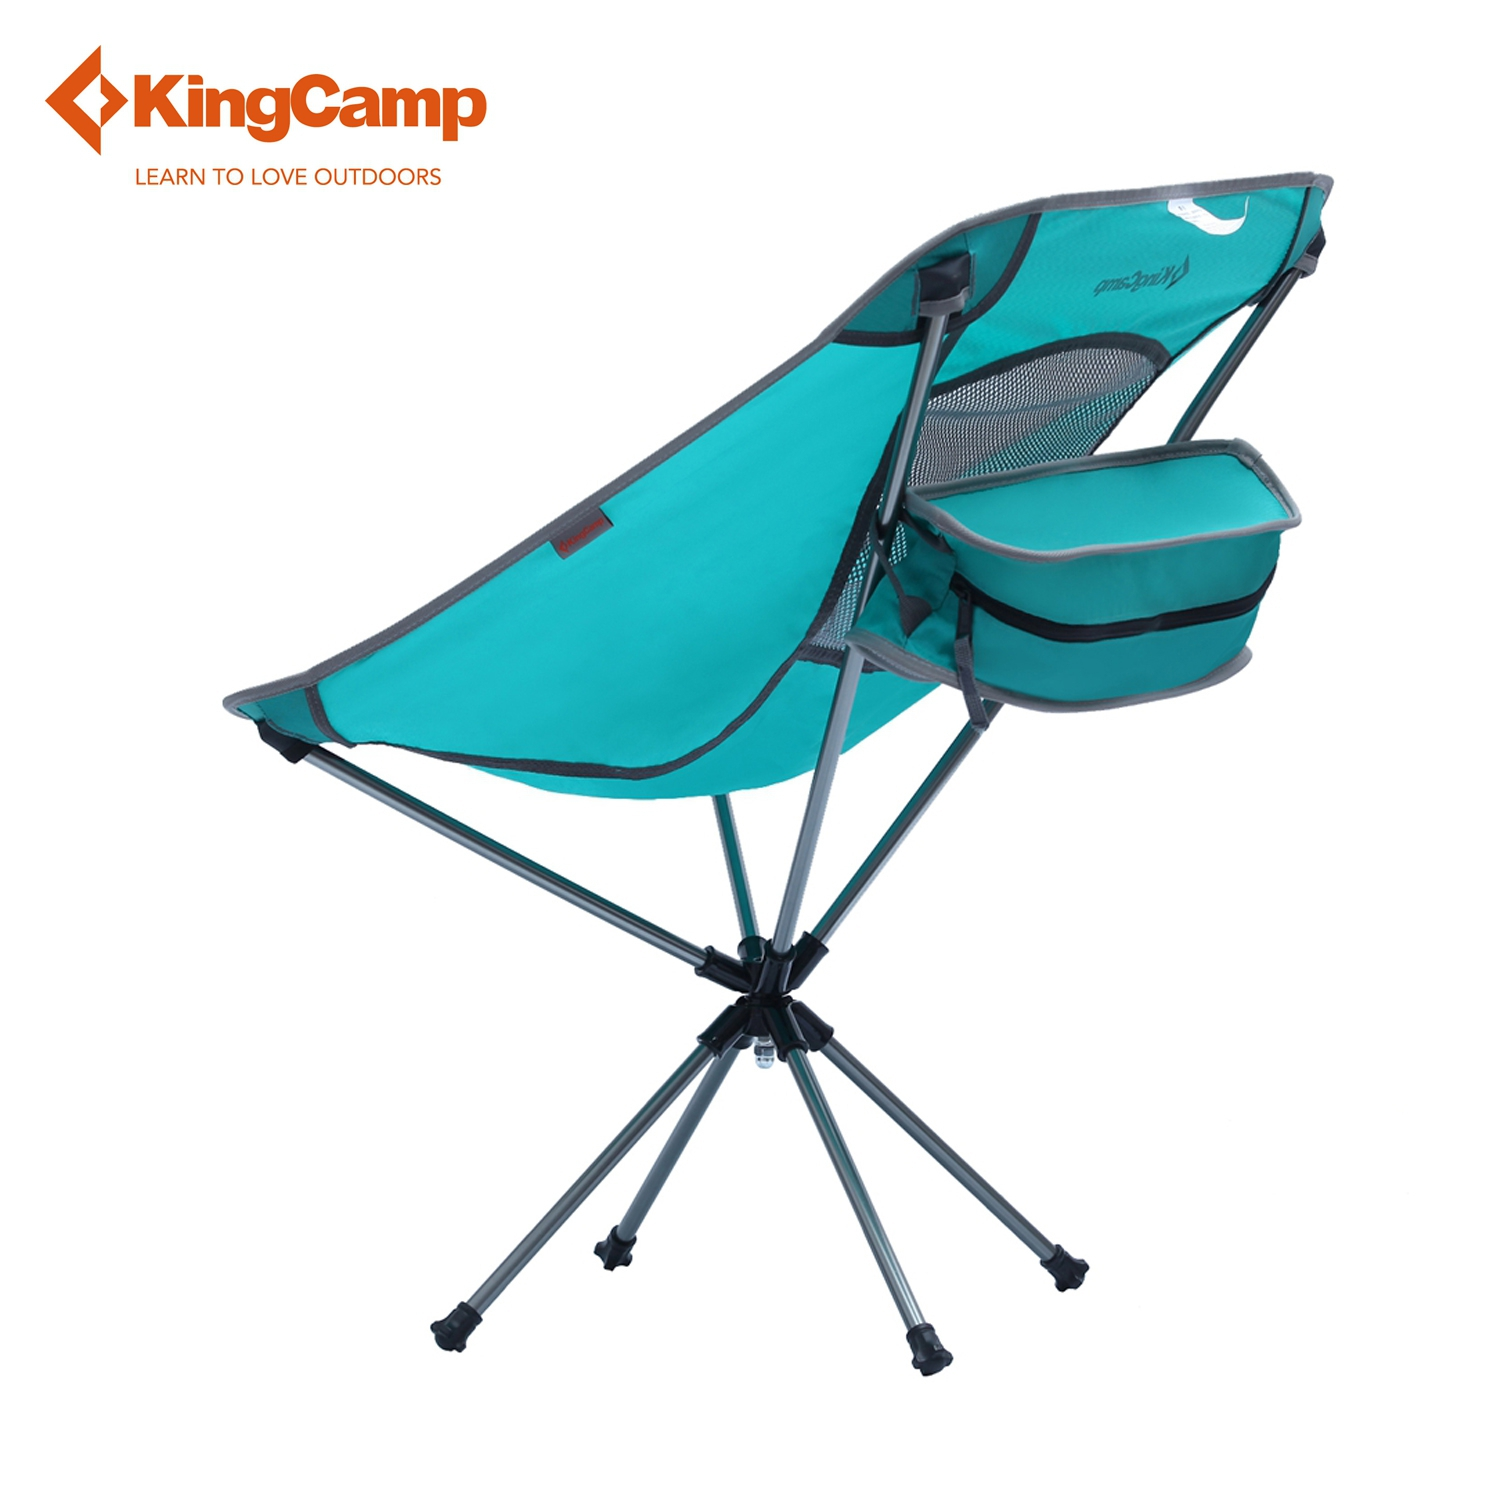 kingcamp portable ultralight fishing chair outdoor swivel. Black Bedroom Furniture Sets. Home Design Ideas